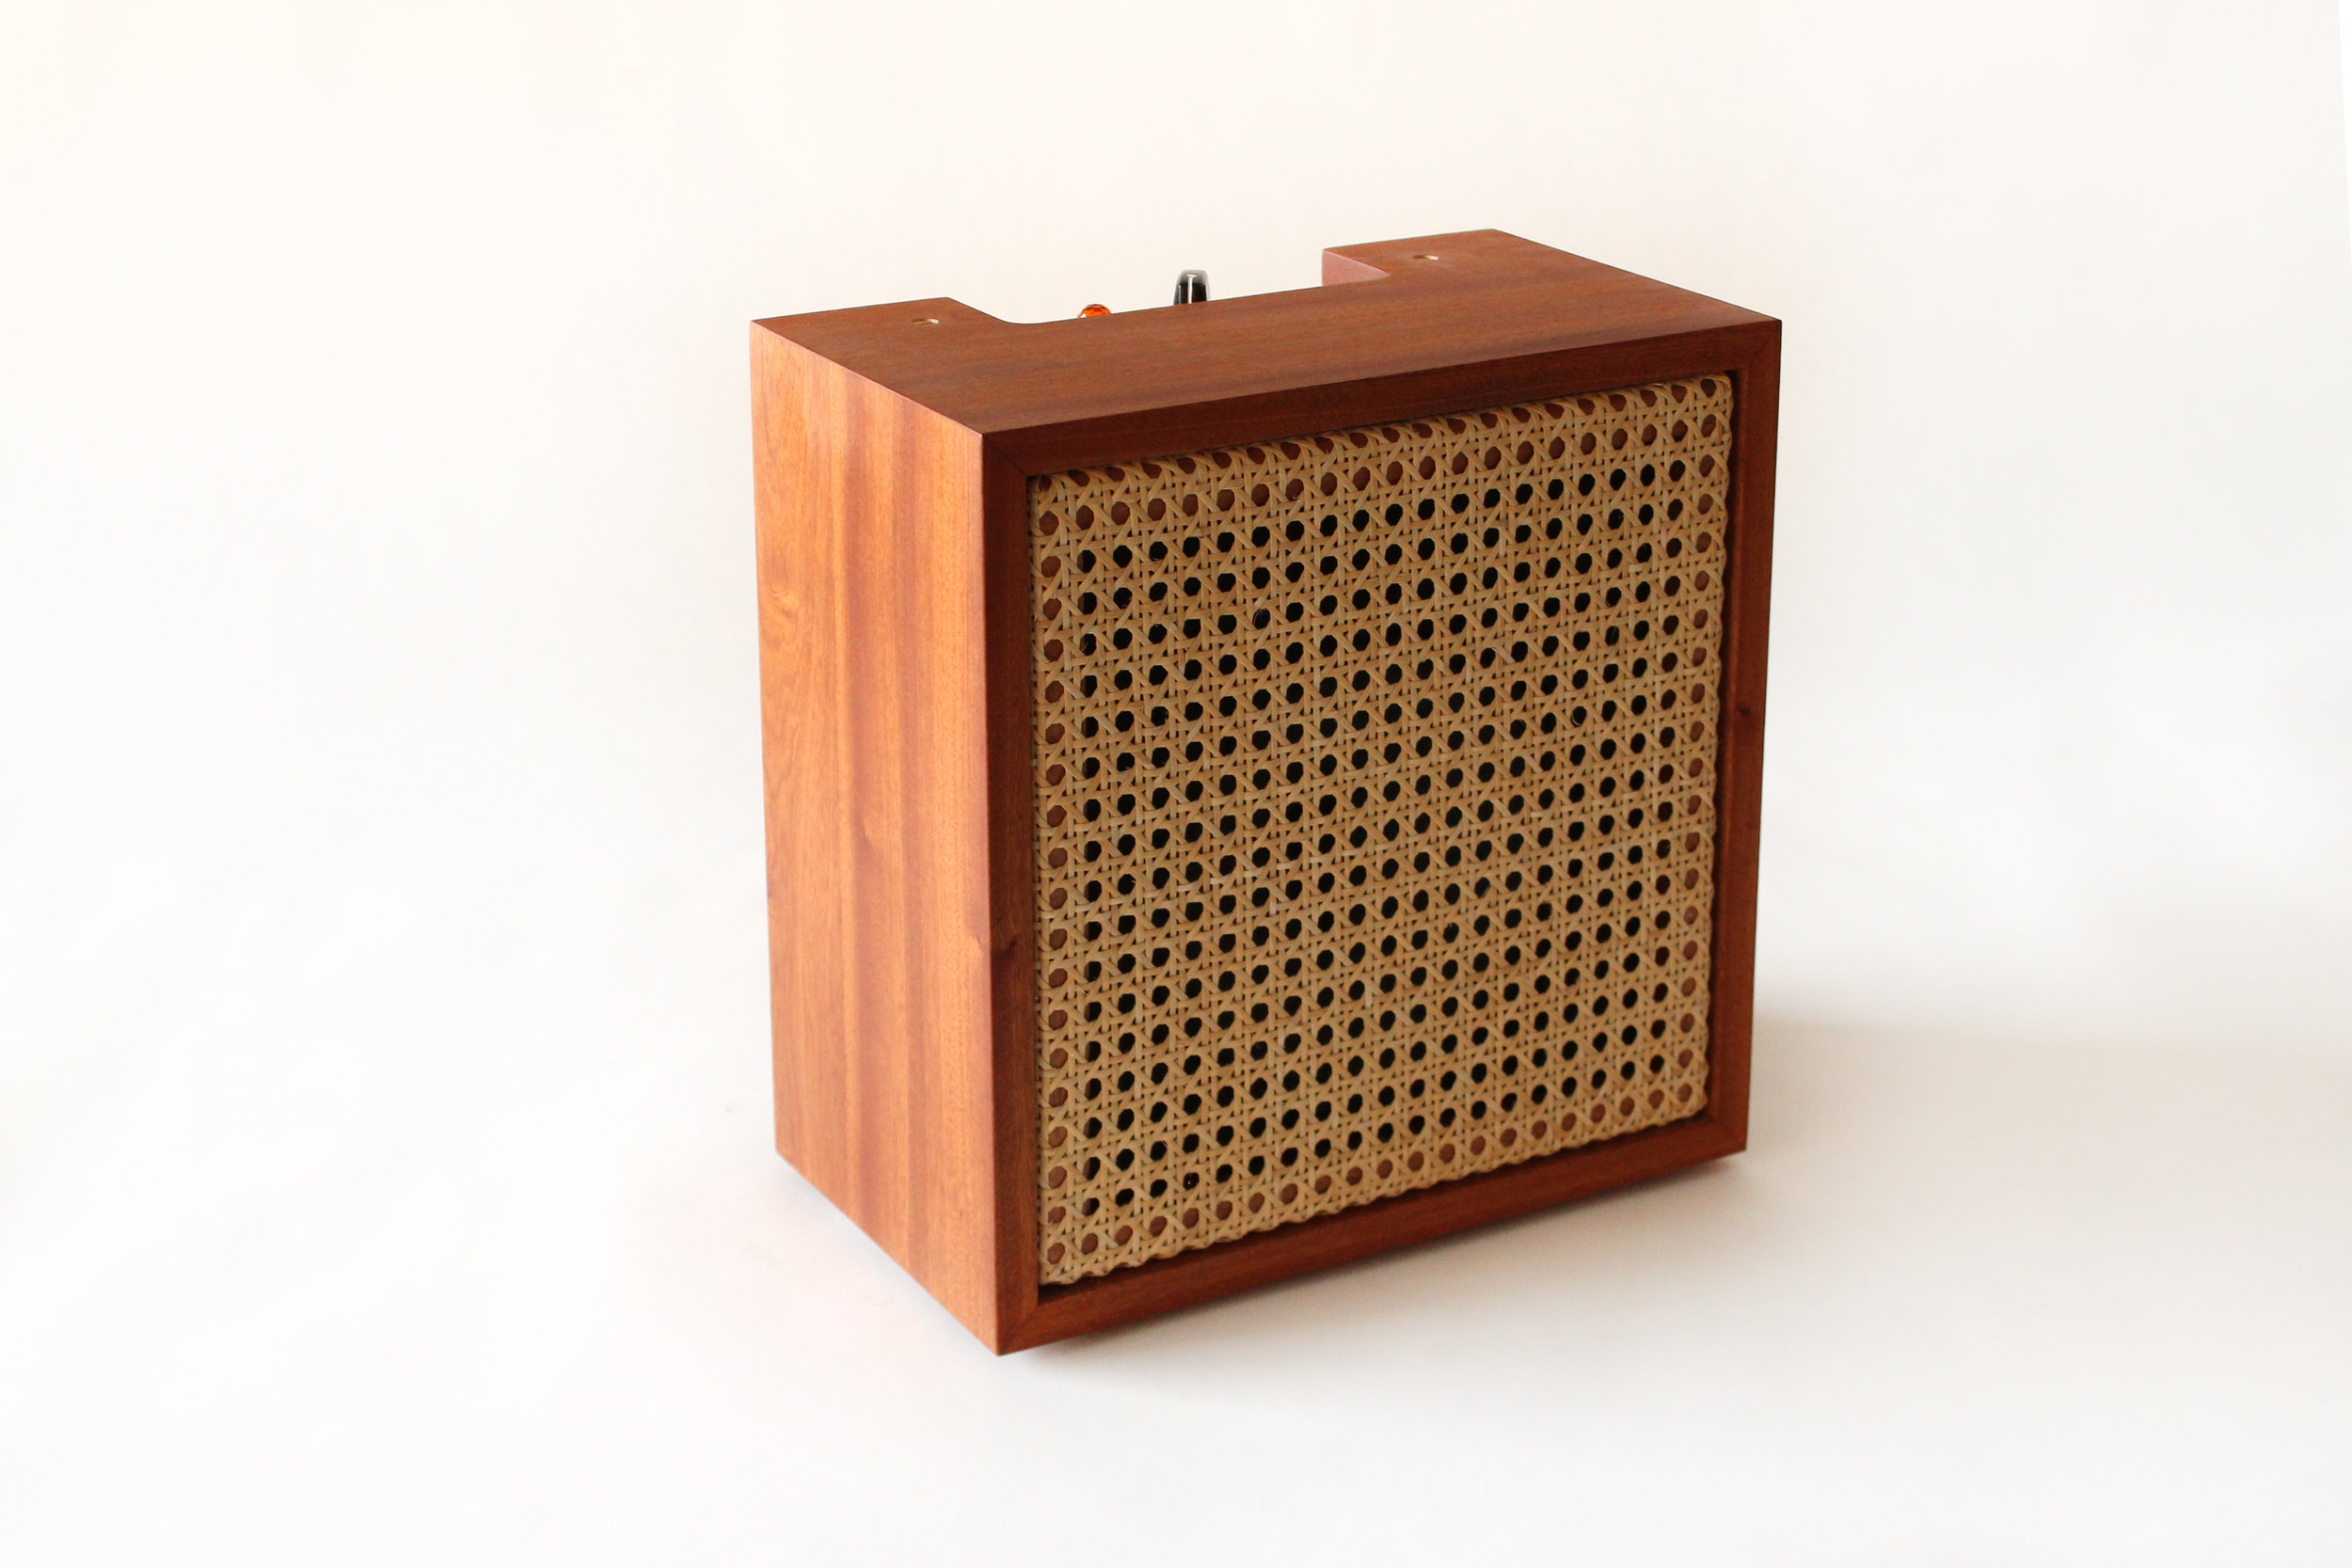 amp2 front angle.jpg